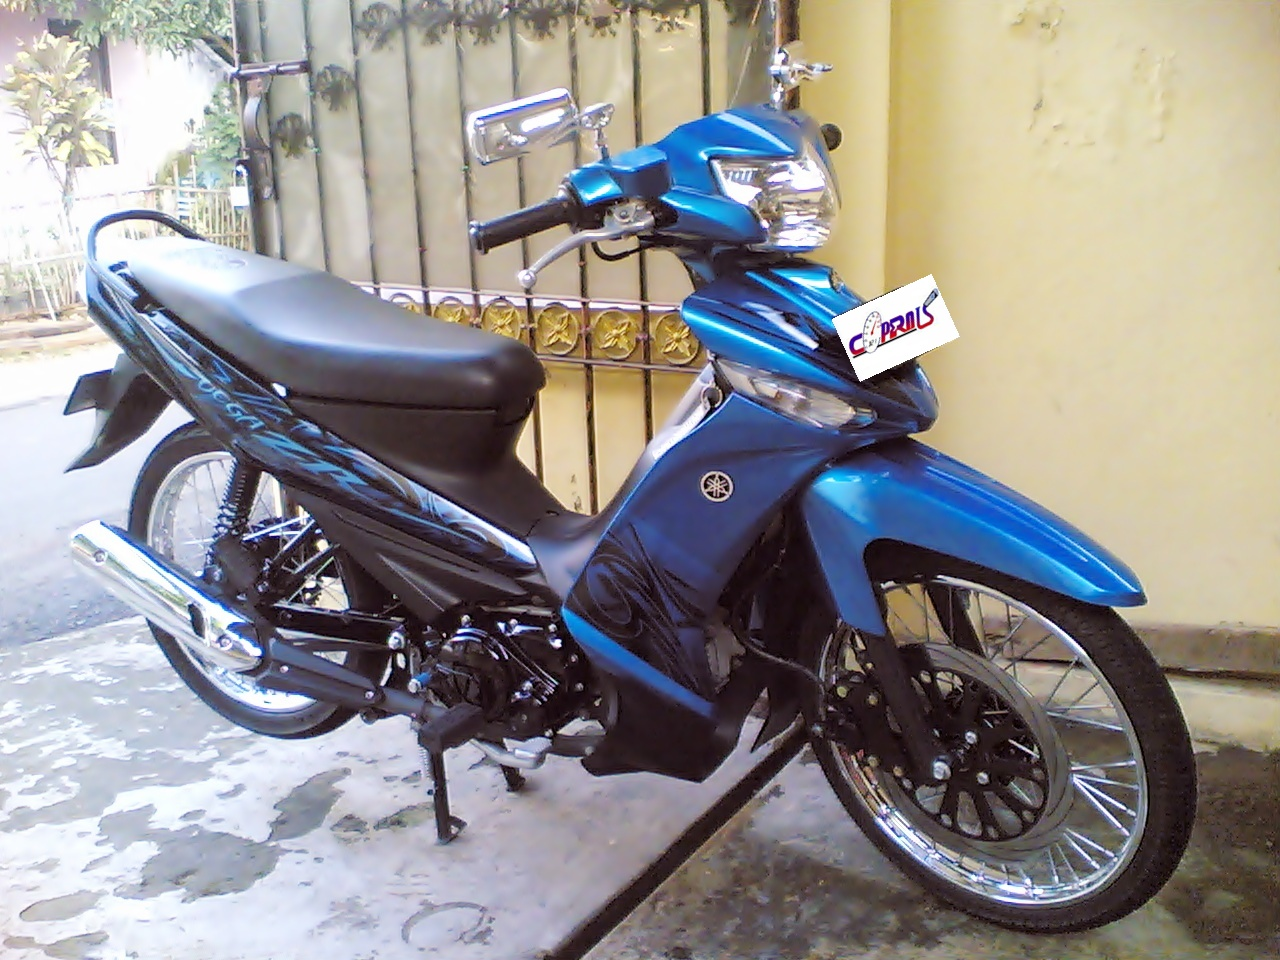 Vega Zr Modifikasi